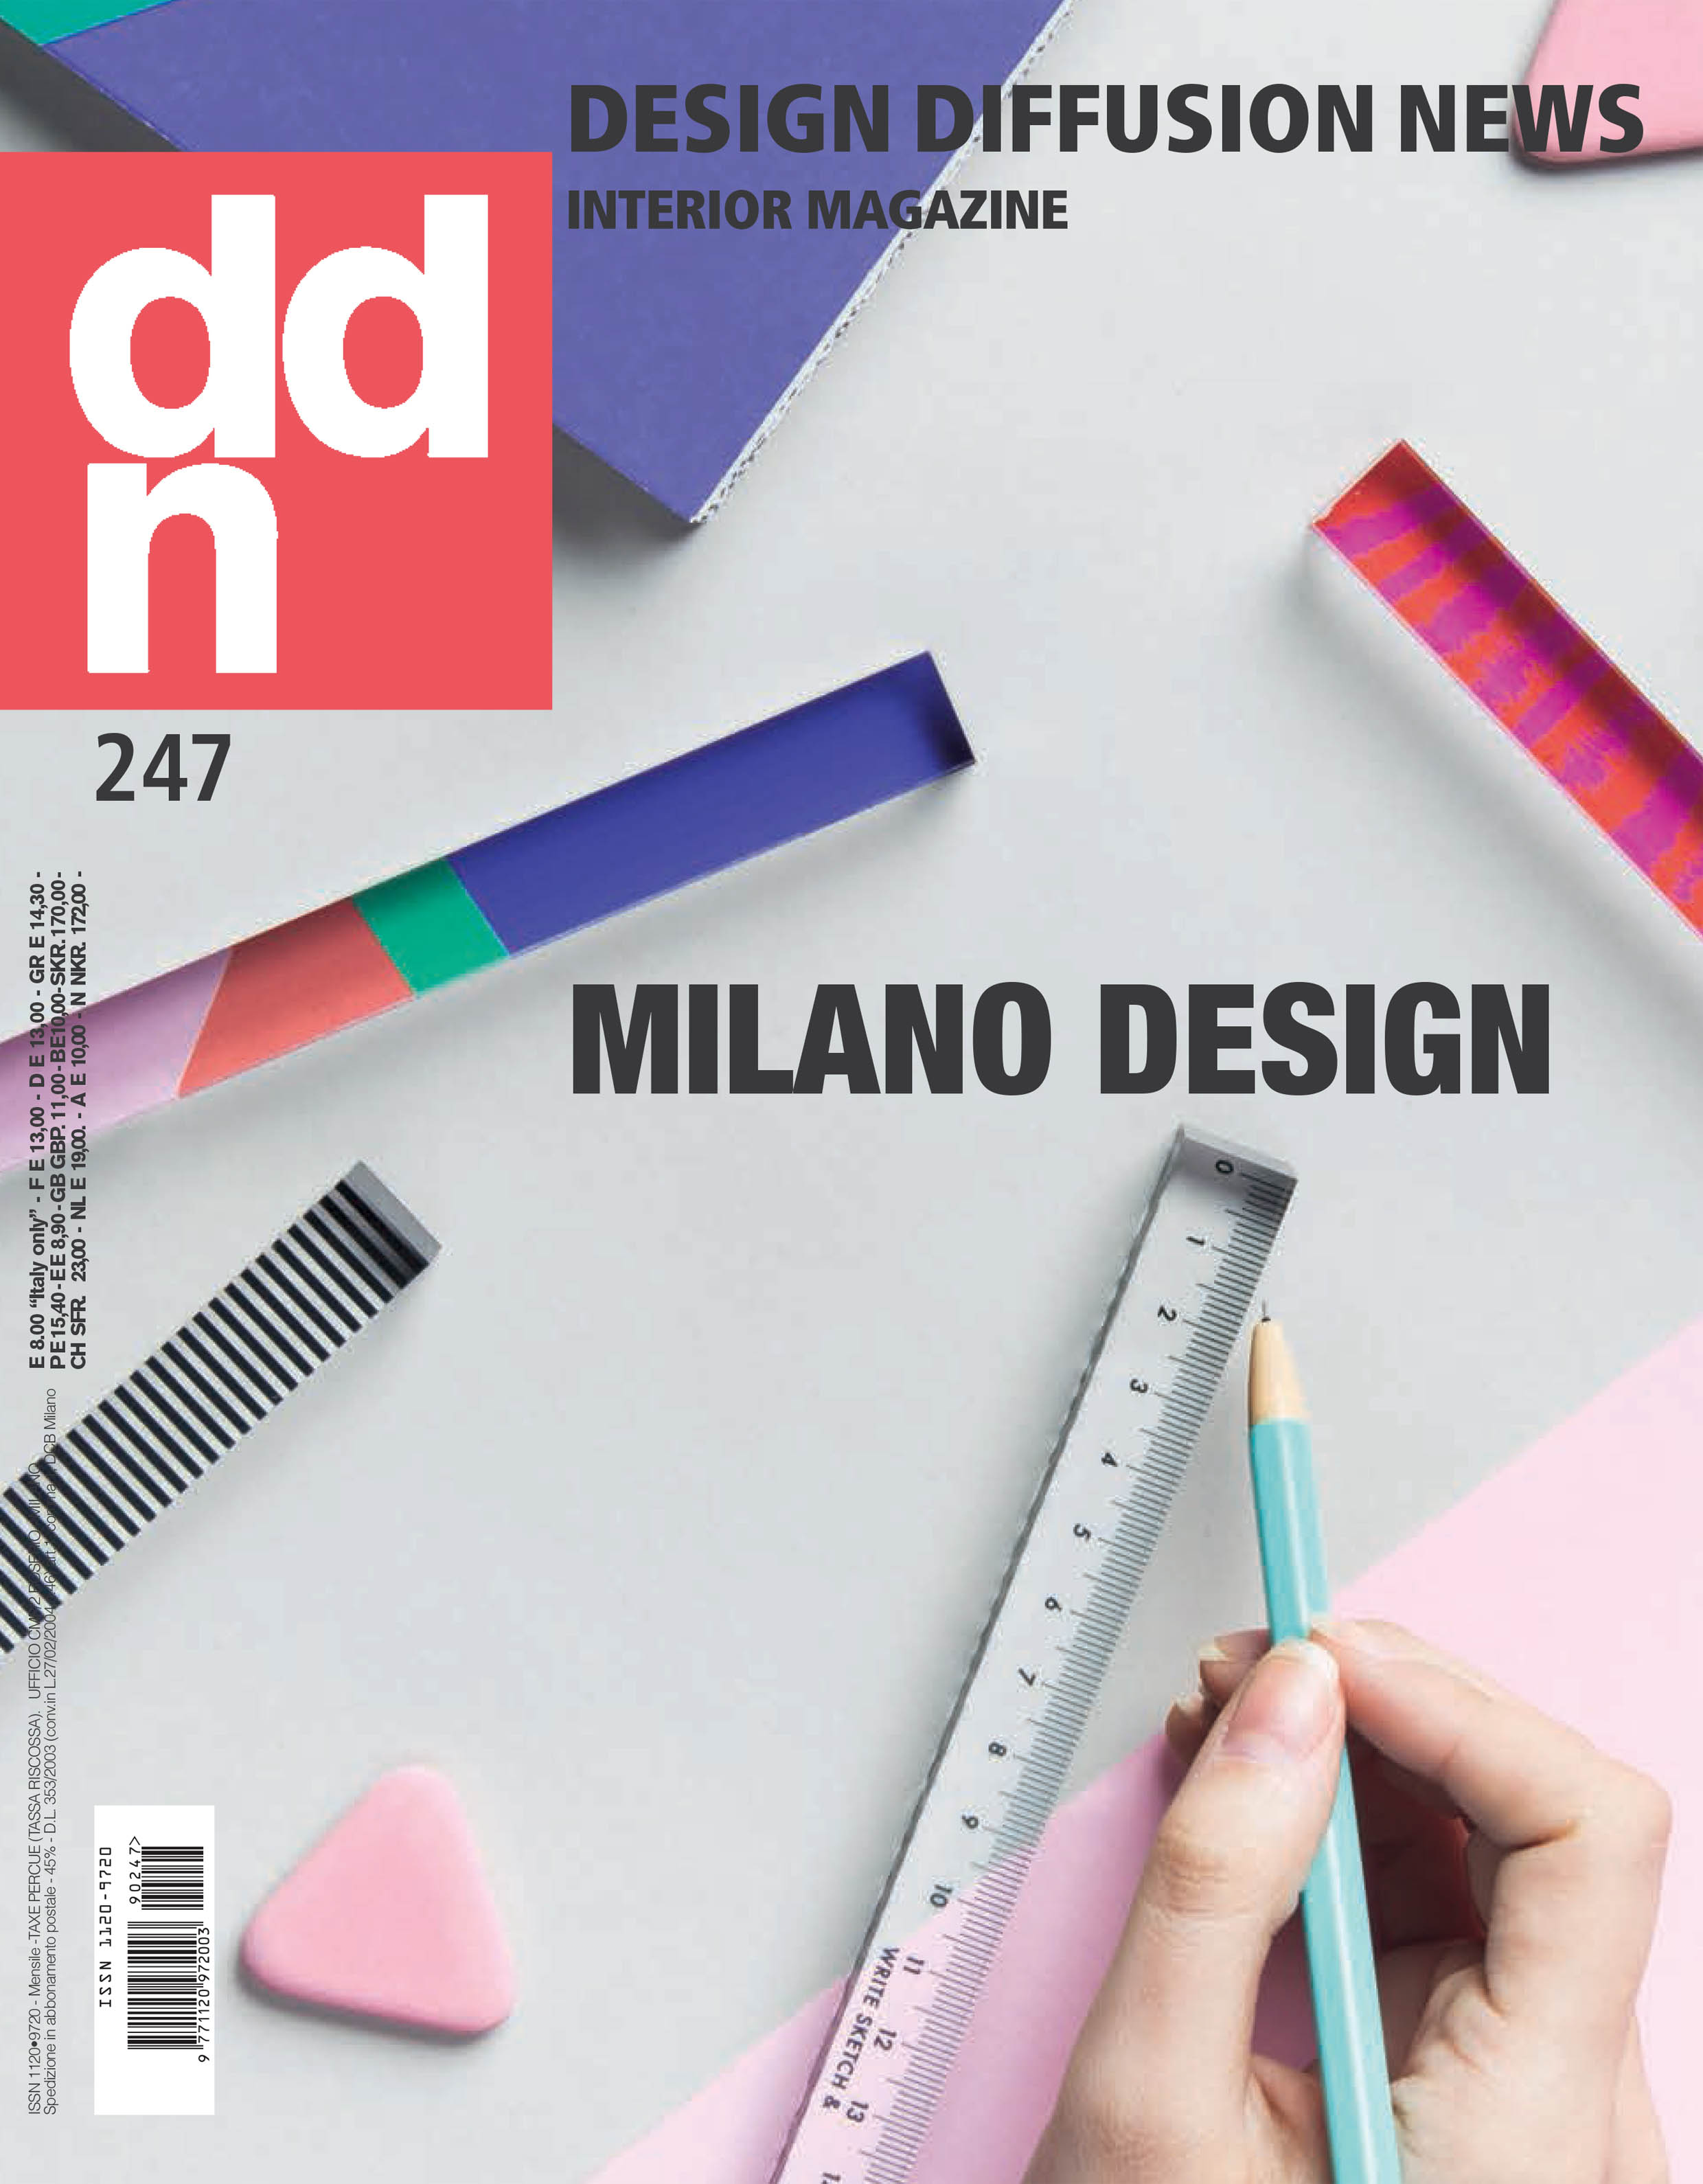 Francesco meda ddn cover.jpg